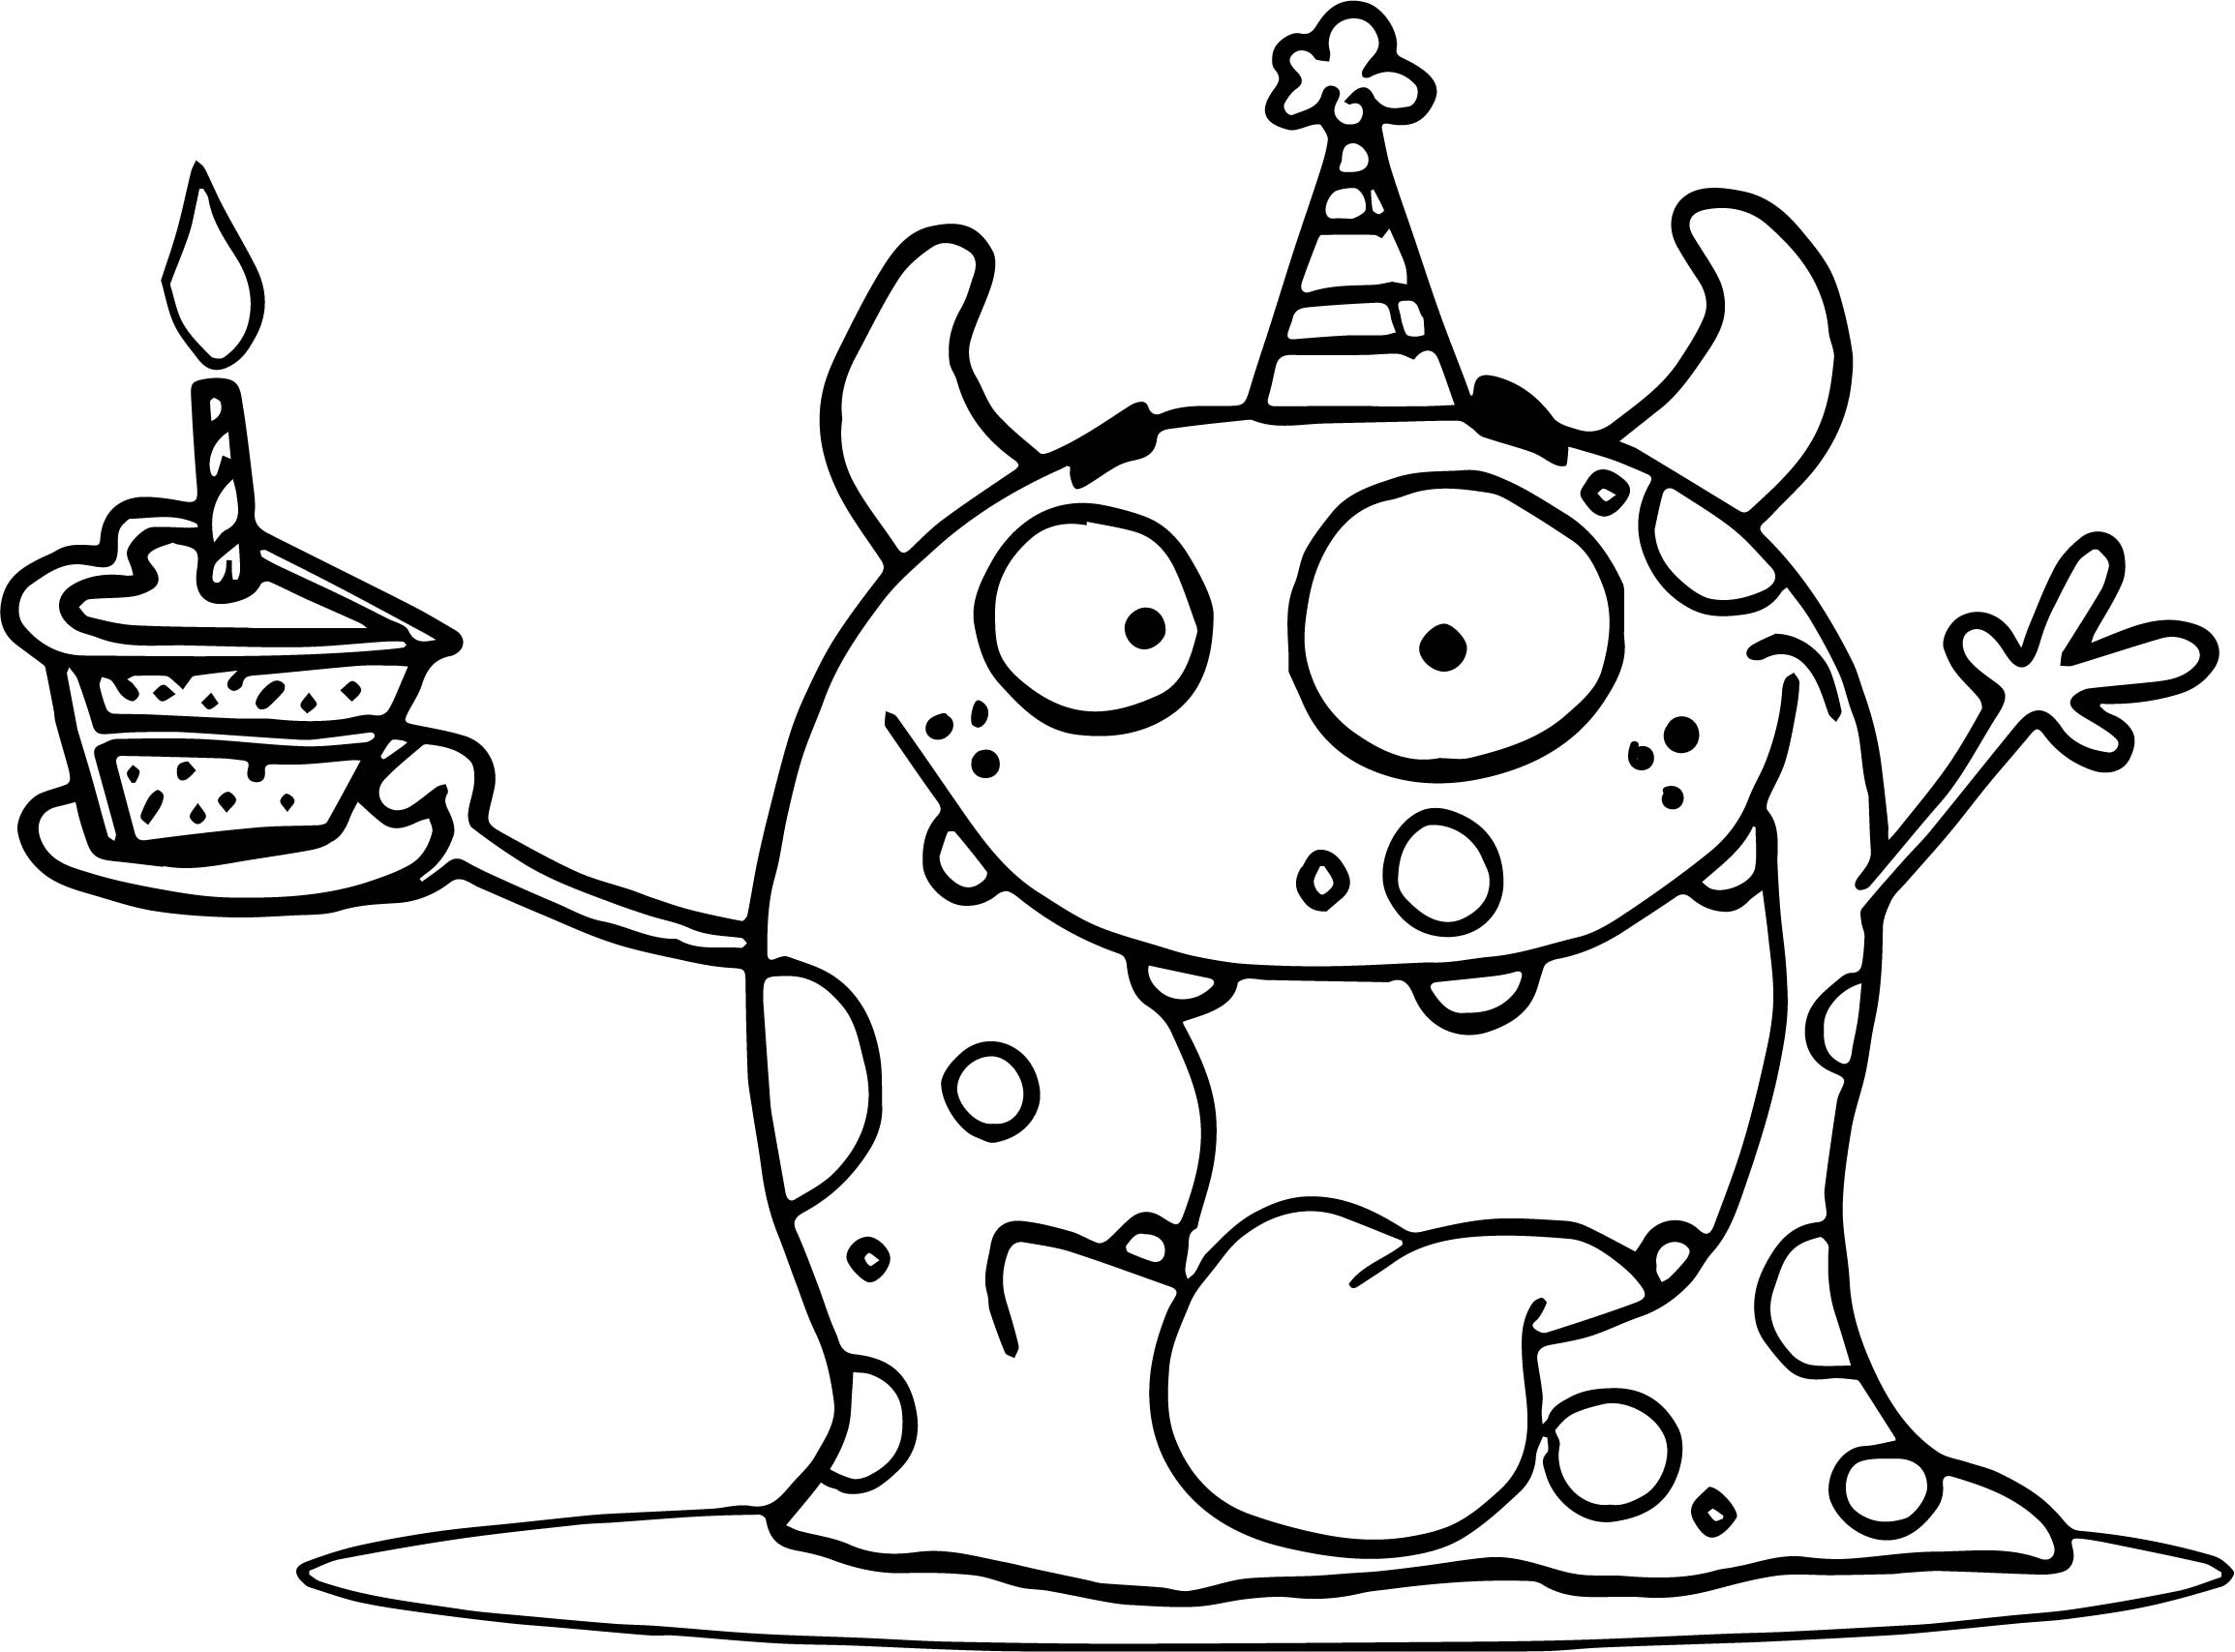 birthday party coloring sheets ; Weaver-Party-Animal-Monster-At-A-Birthday-Party-With-A-Piece-Of-Cake-Coloring-Page